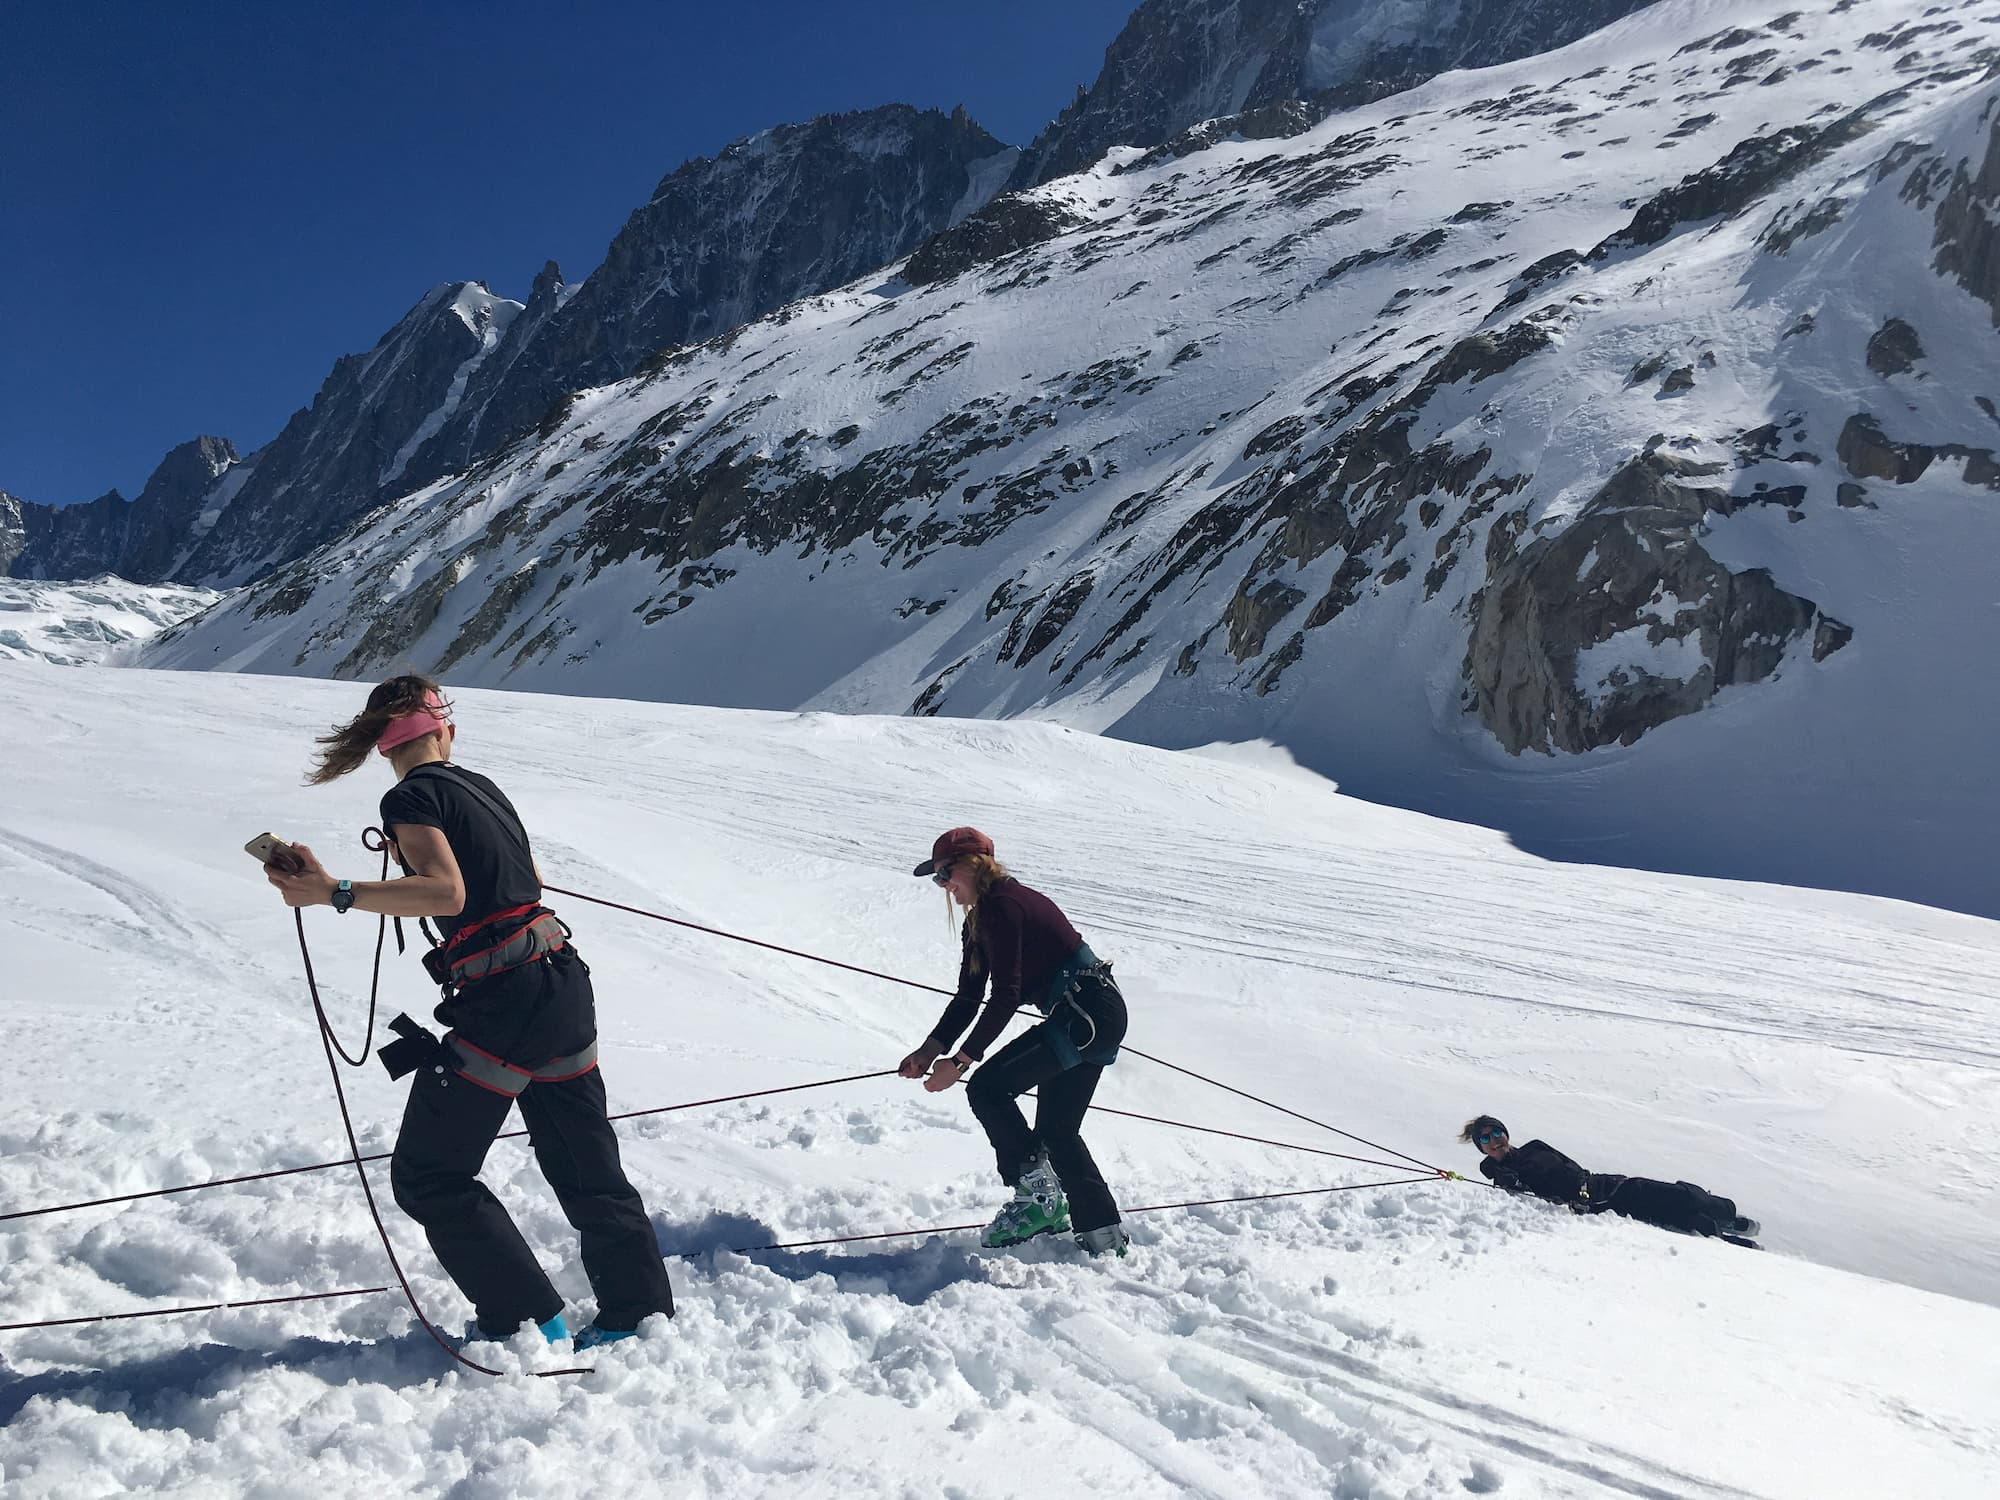 What a classroom! Practicing crevasse rescue with the Womens Mountain Club Chamonix